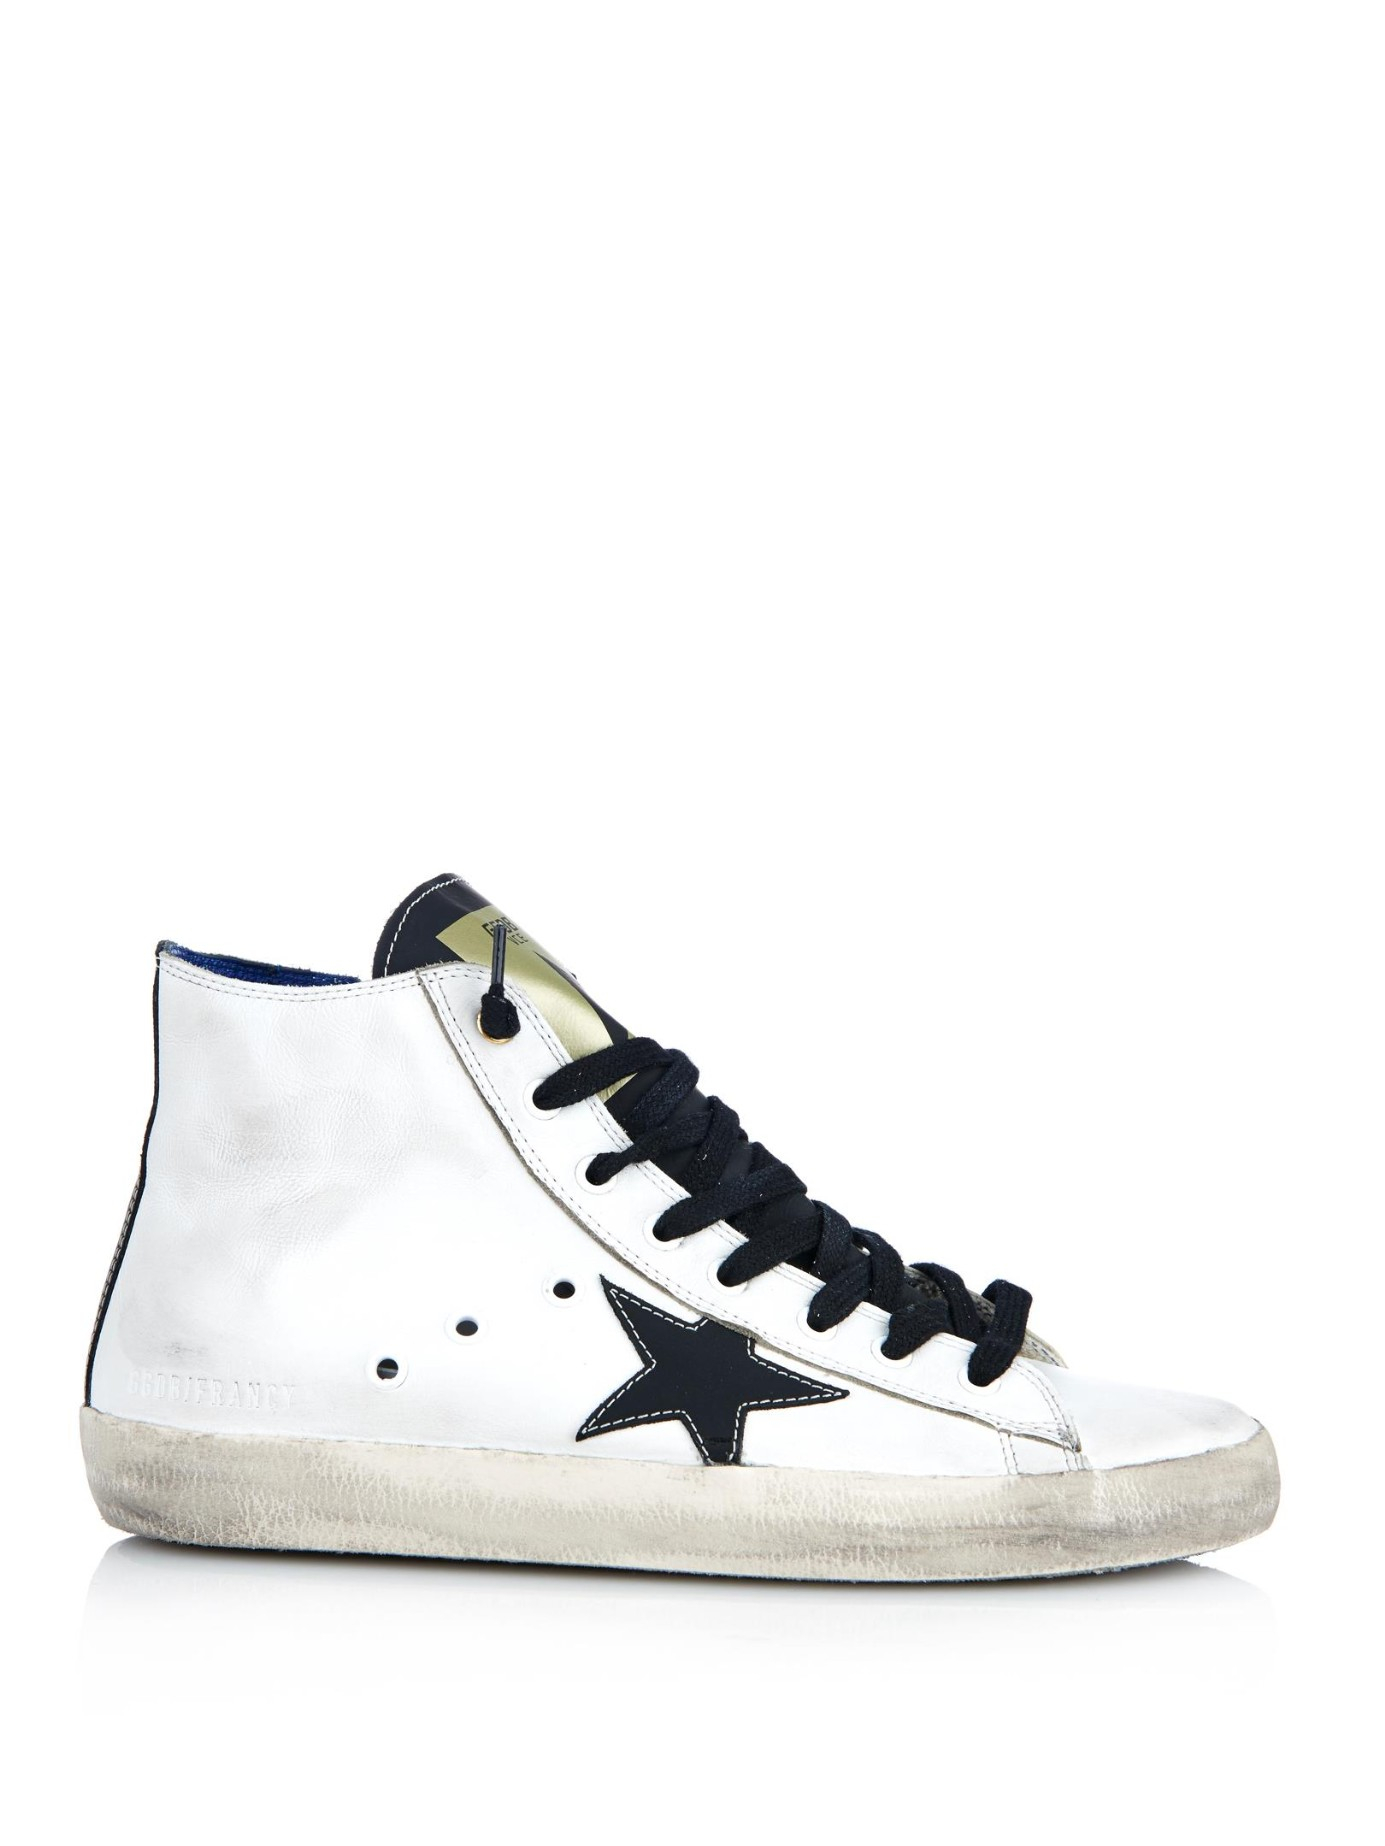 Francy Distressed Leather And Suede High-top Sneakers - White Golden Goose 6R48I0Pew